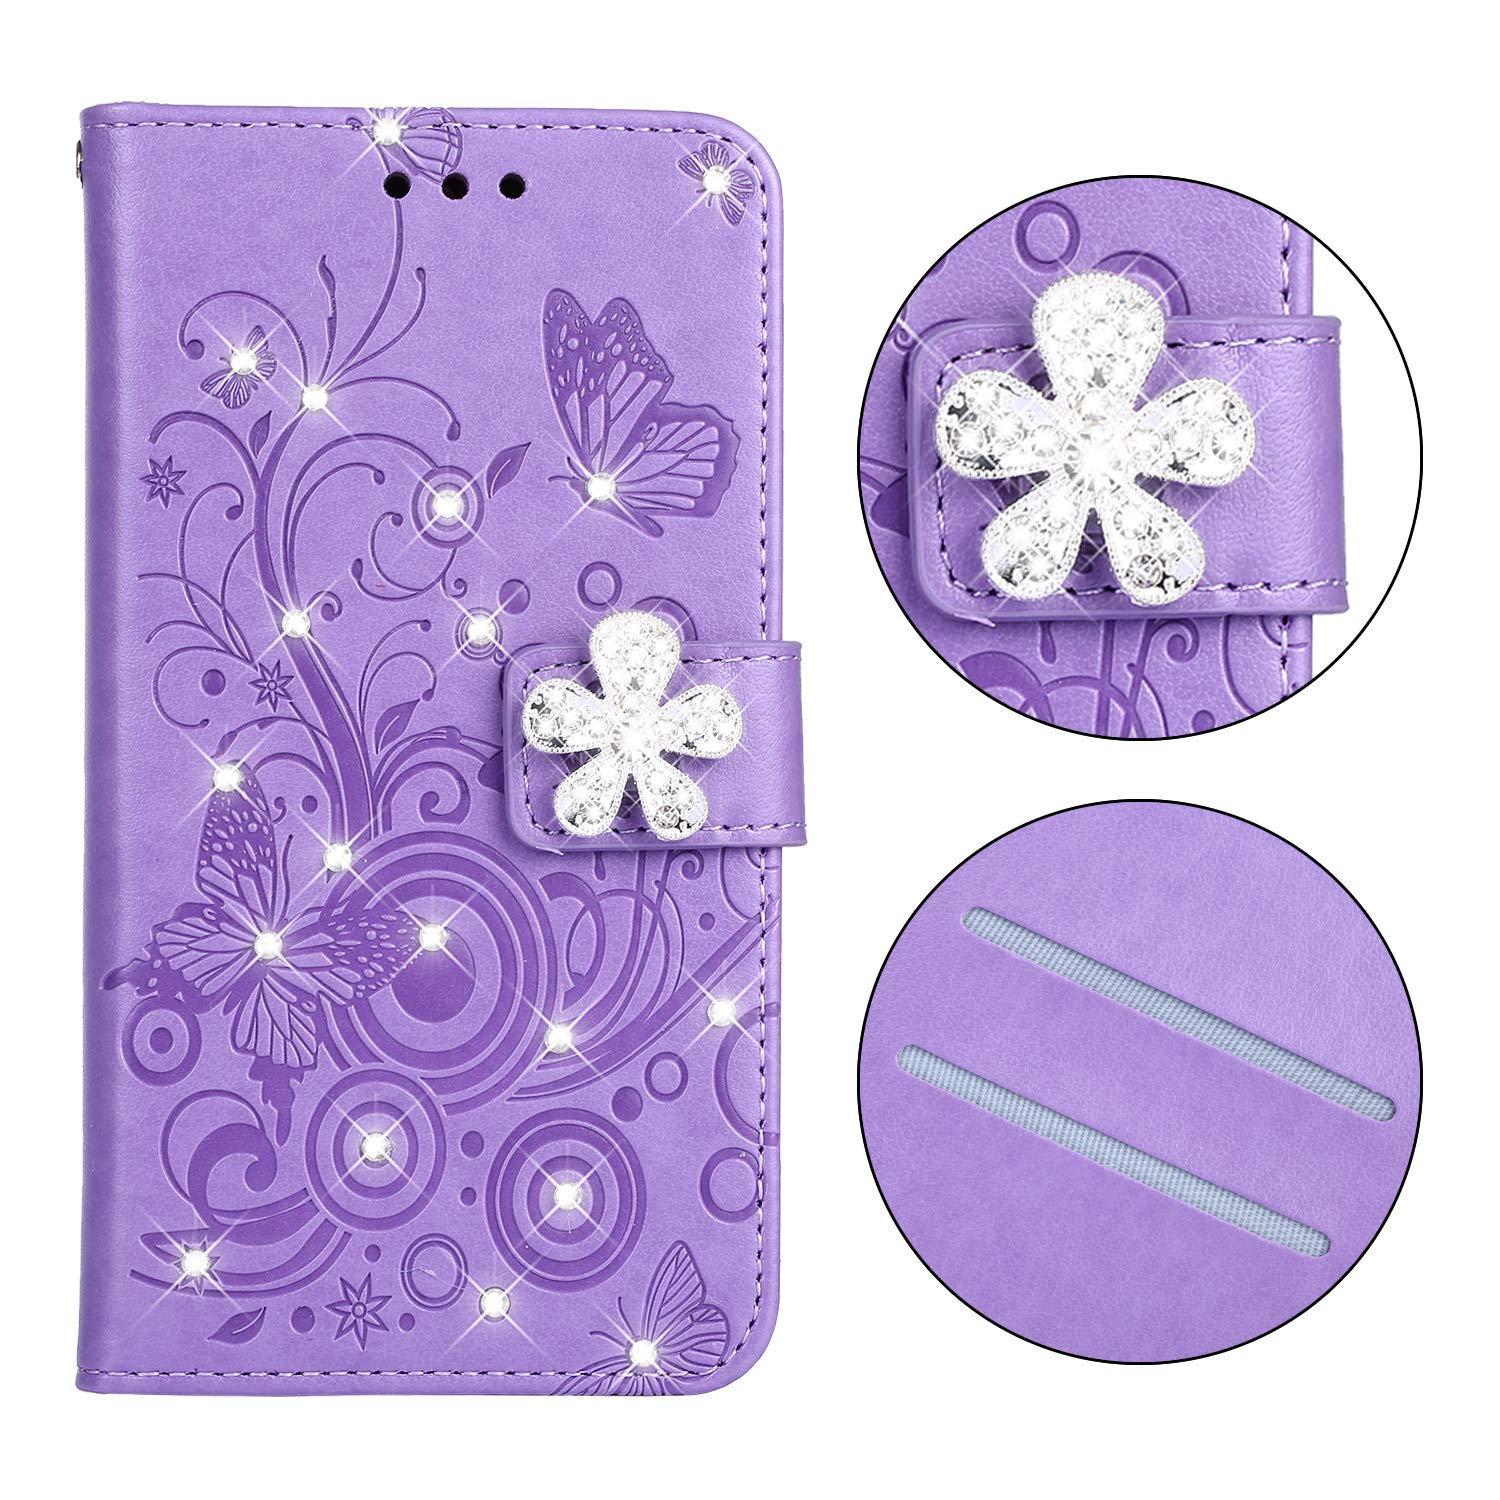 Diamond Strap Wallet Case for iPhone 11 Pro 5.8'' 2019,Aoucase Luxury 3D Crystal Flower Magnetic Bling Butterfly Print PU Leather Soft TPU Stand Flip Case with Black Dual-use Stylus - Purple by Aoucase